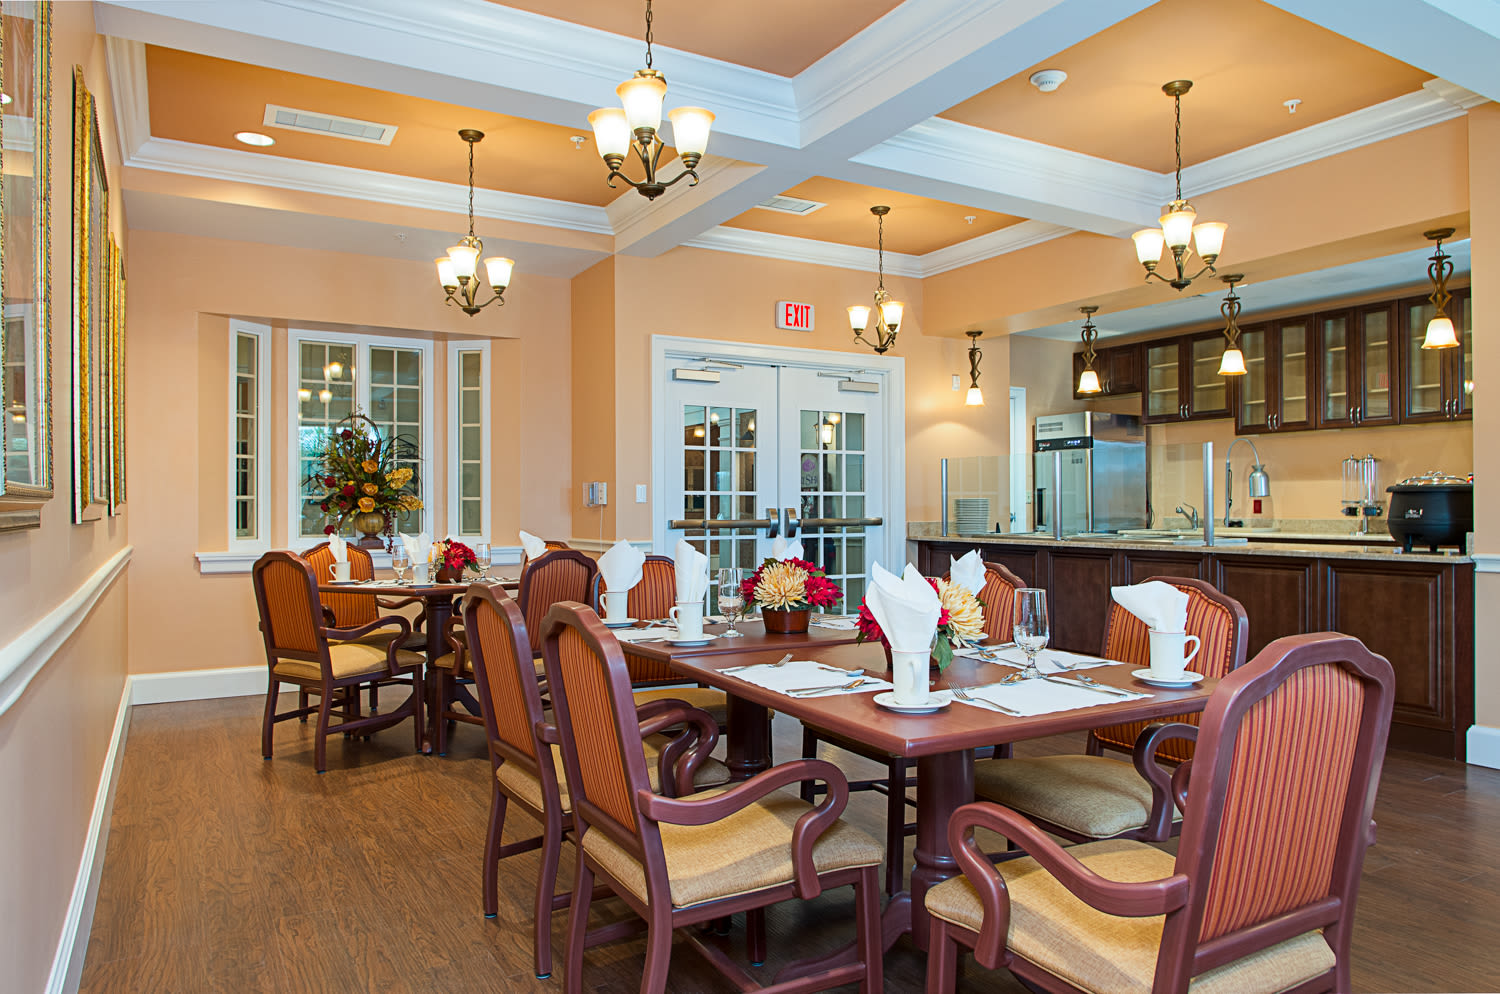 Dining hall at Grand Villa of Melbourne in Florida